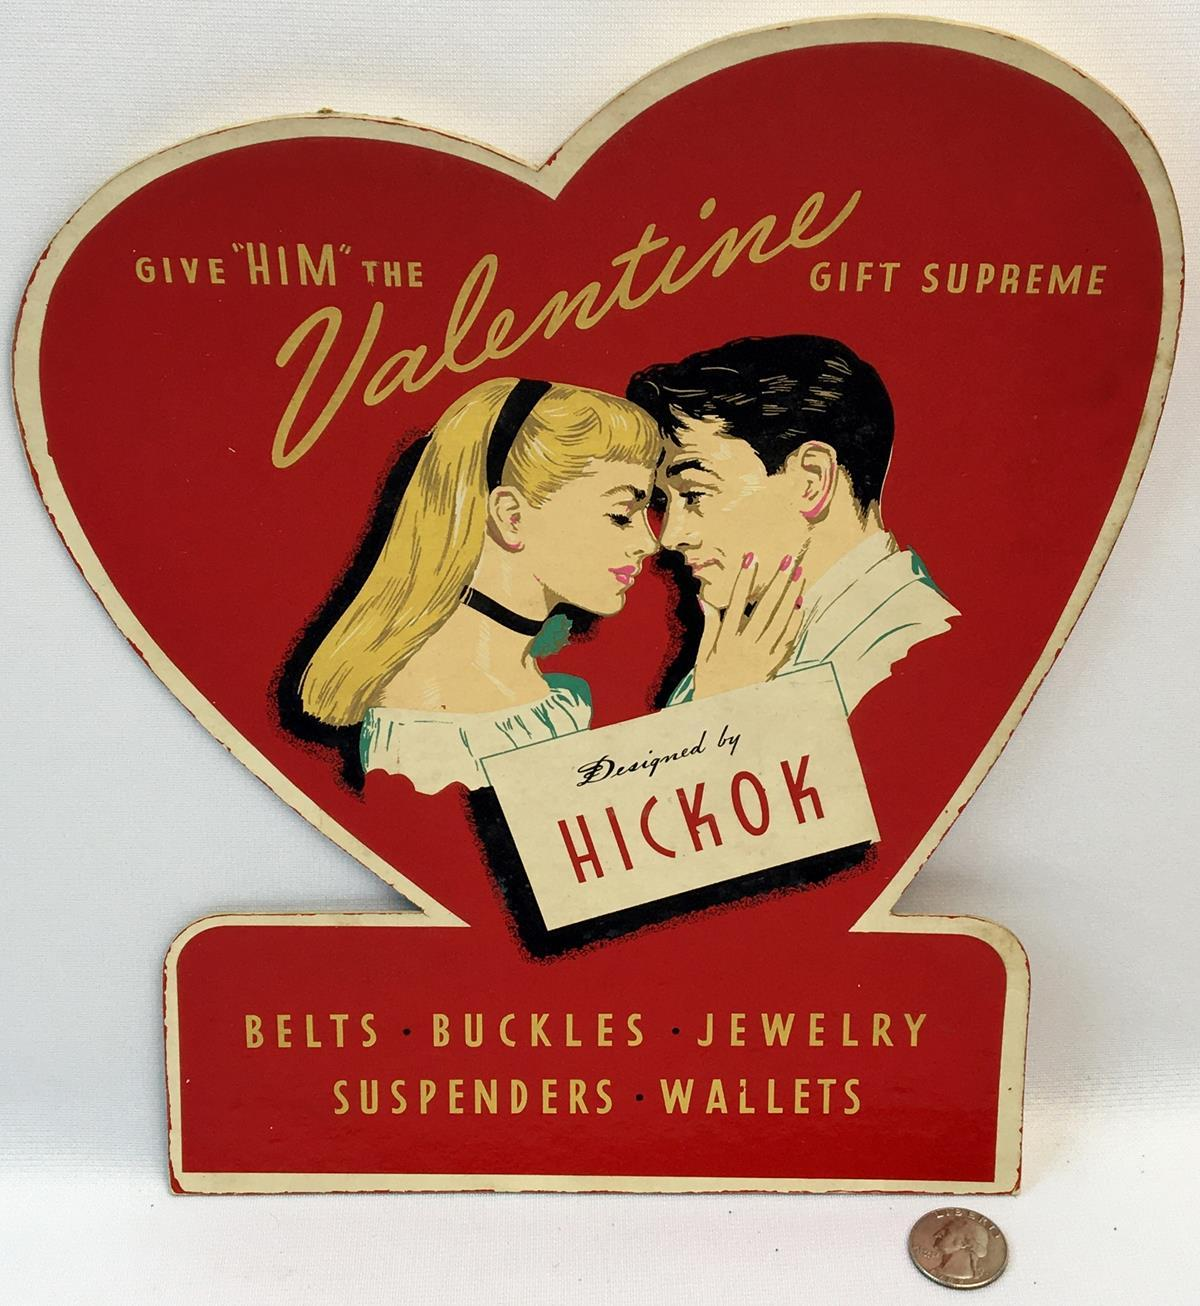 RARE Vintage c. 1930 Hickok Valentine Advertising Cardboard Store Display